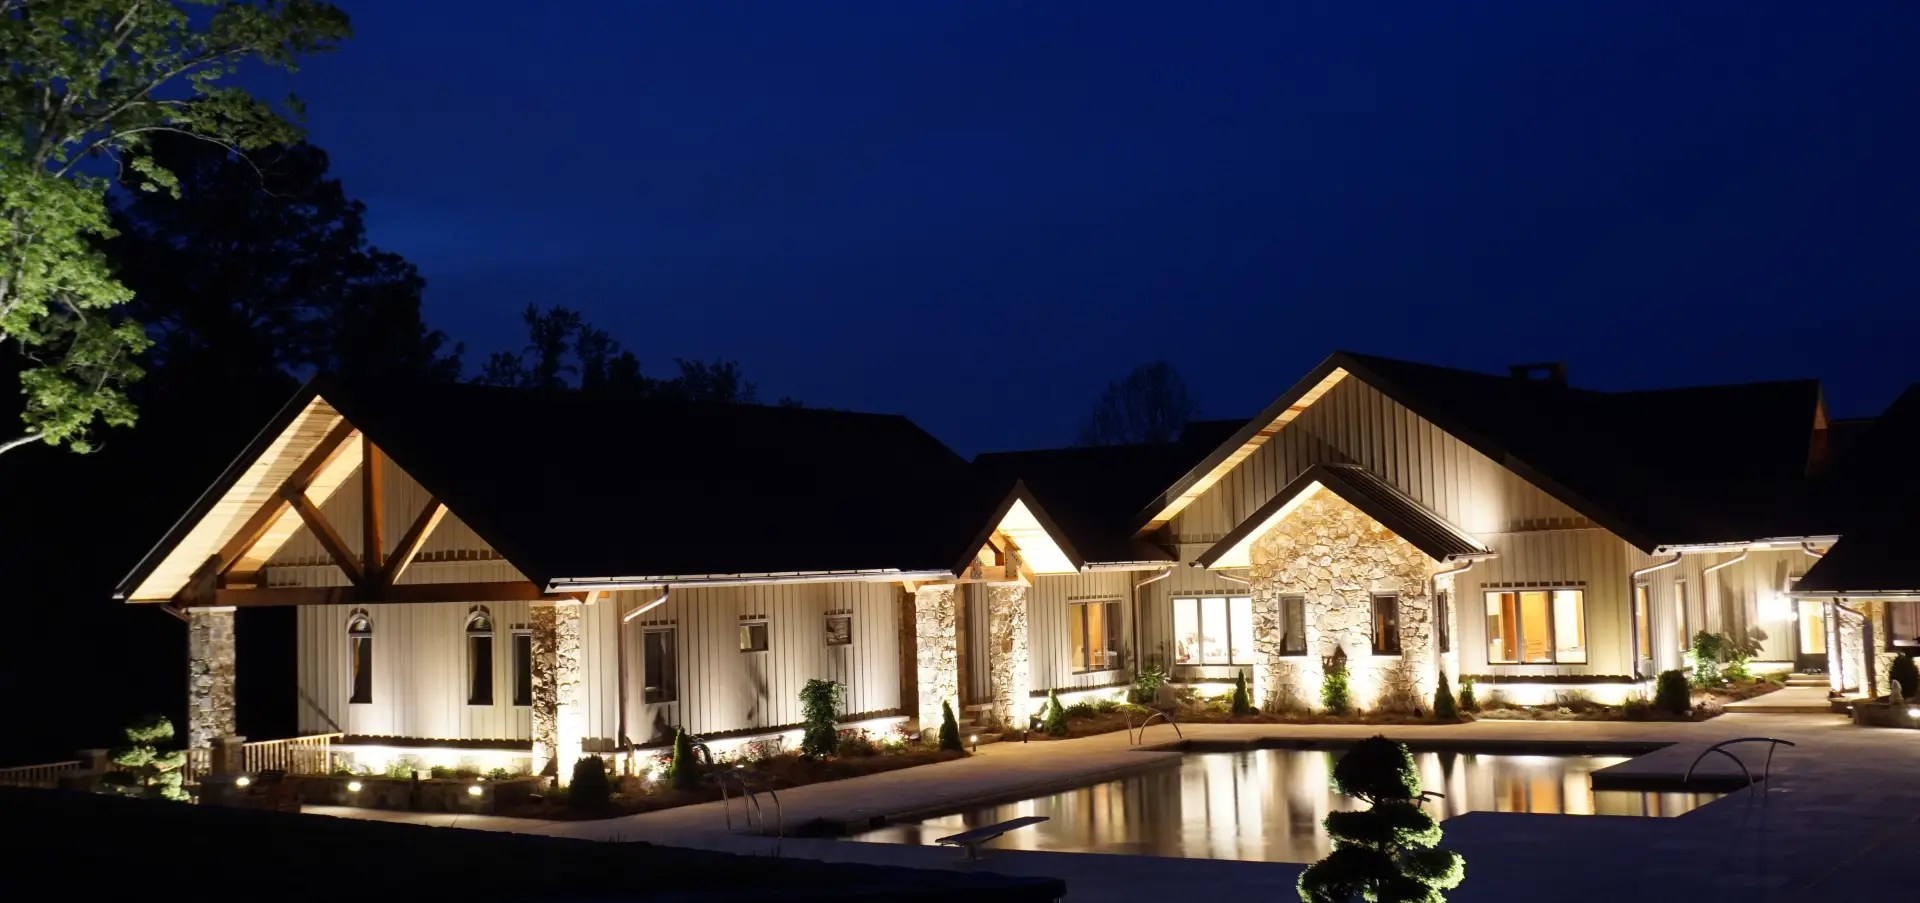 Illuminate Your Spring Nights With Outdoor Landscape Lighting Landscapes Unlimited